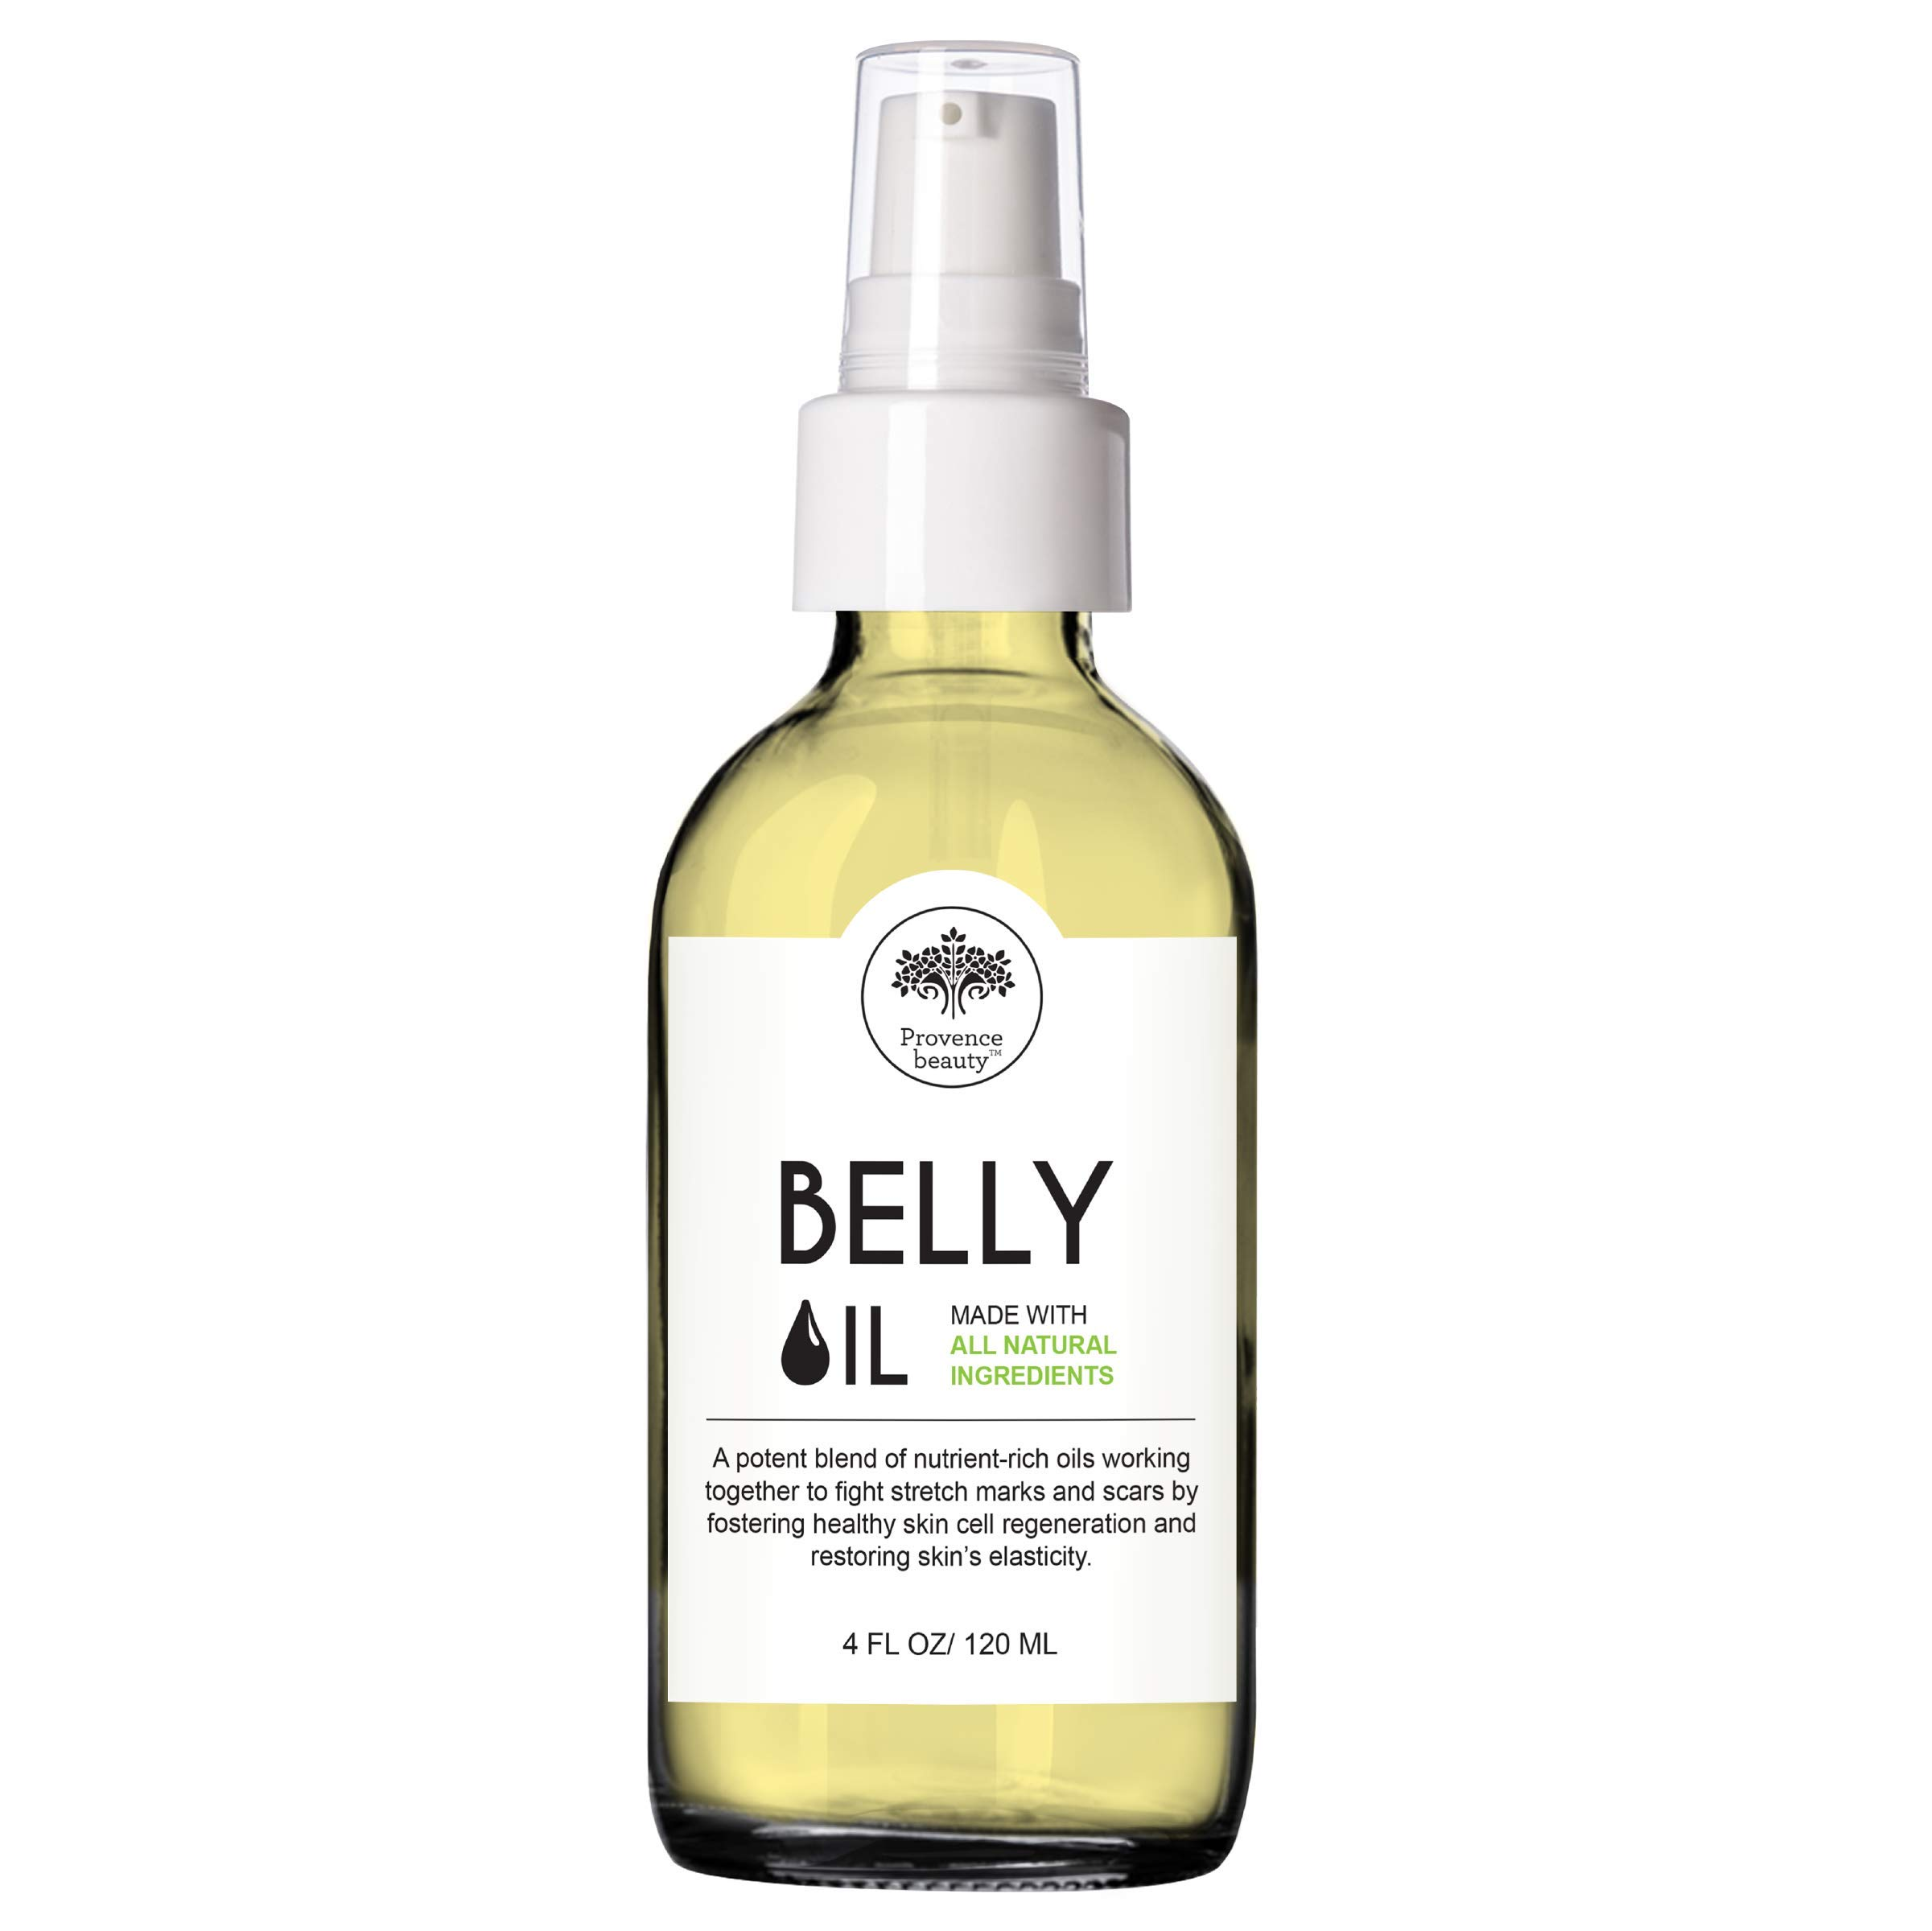 Provence Beauty | Belly Oil - Stretch Mark, Scar Prevention & Reduction Therapy, Safe for Use During Pregnancy & Postmortem - 4OZ by Provence Beauty